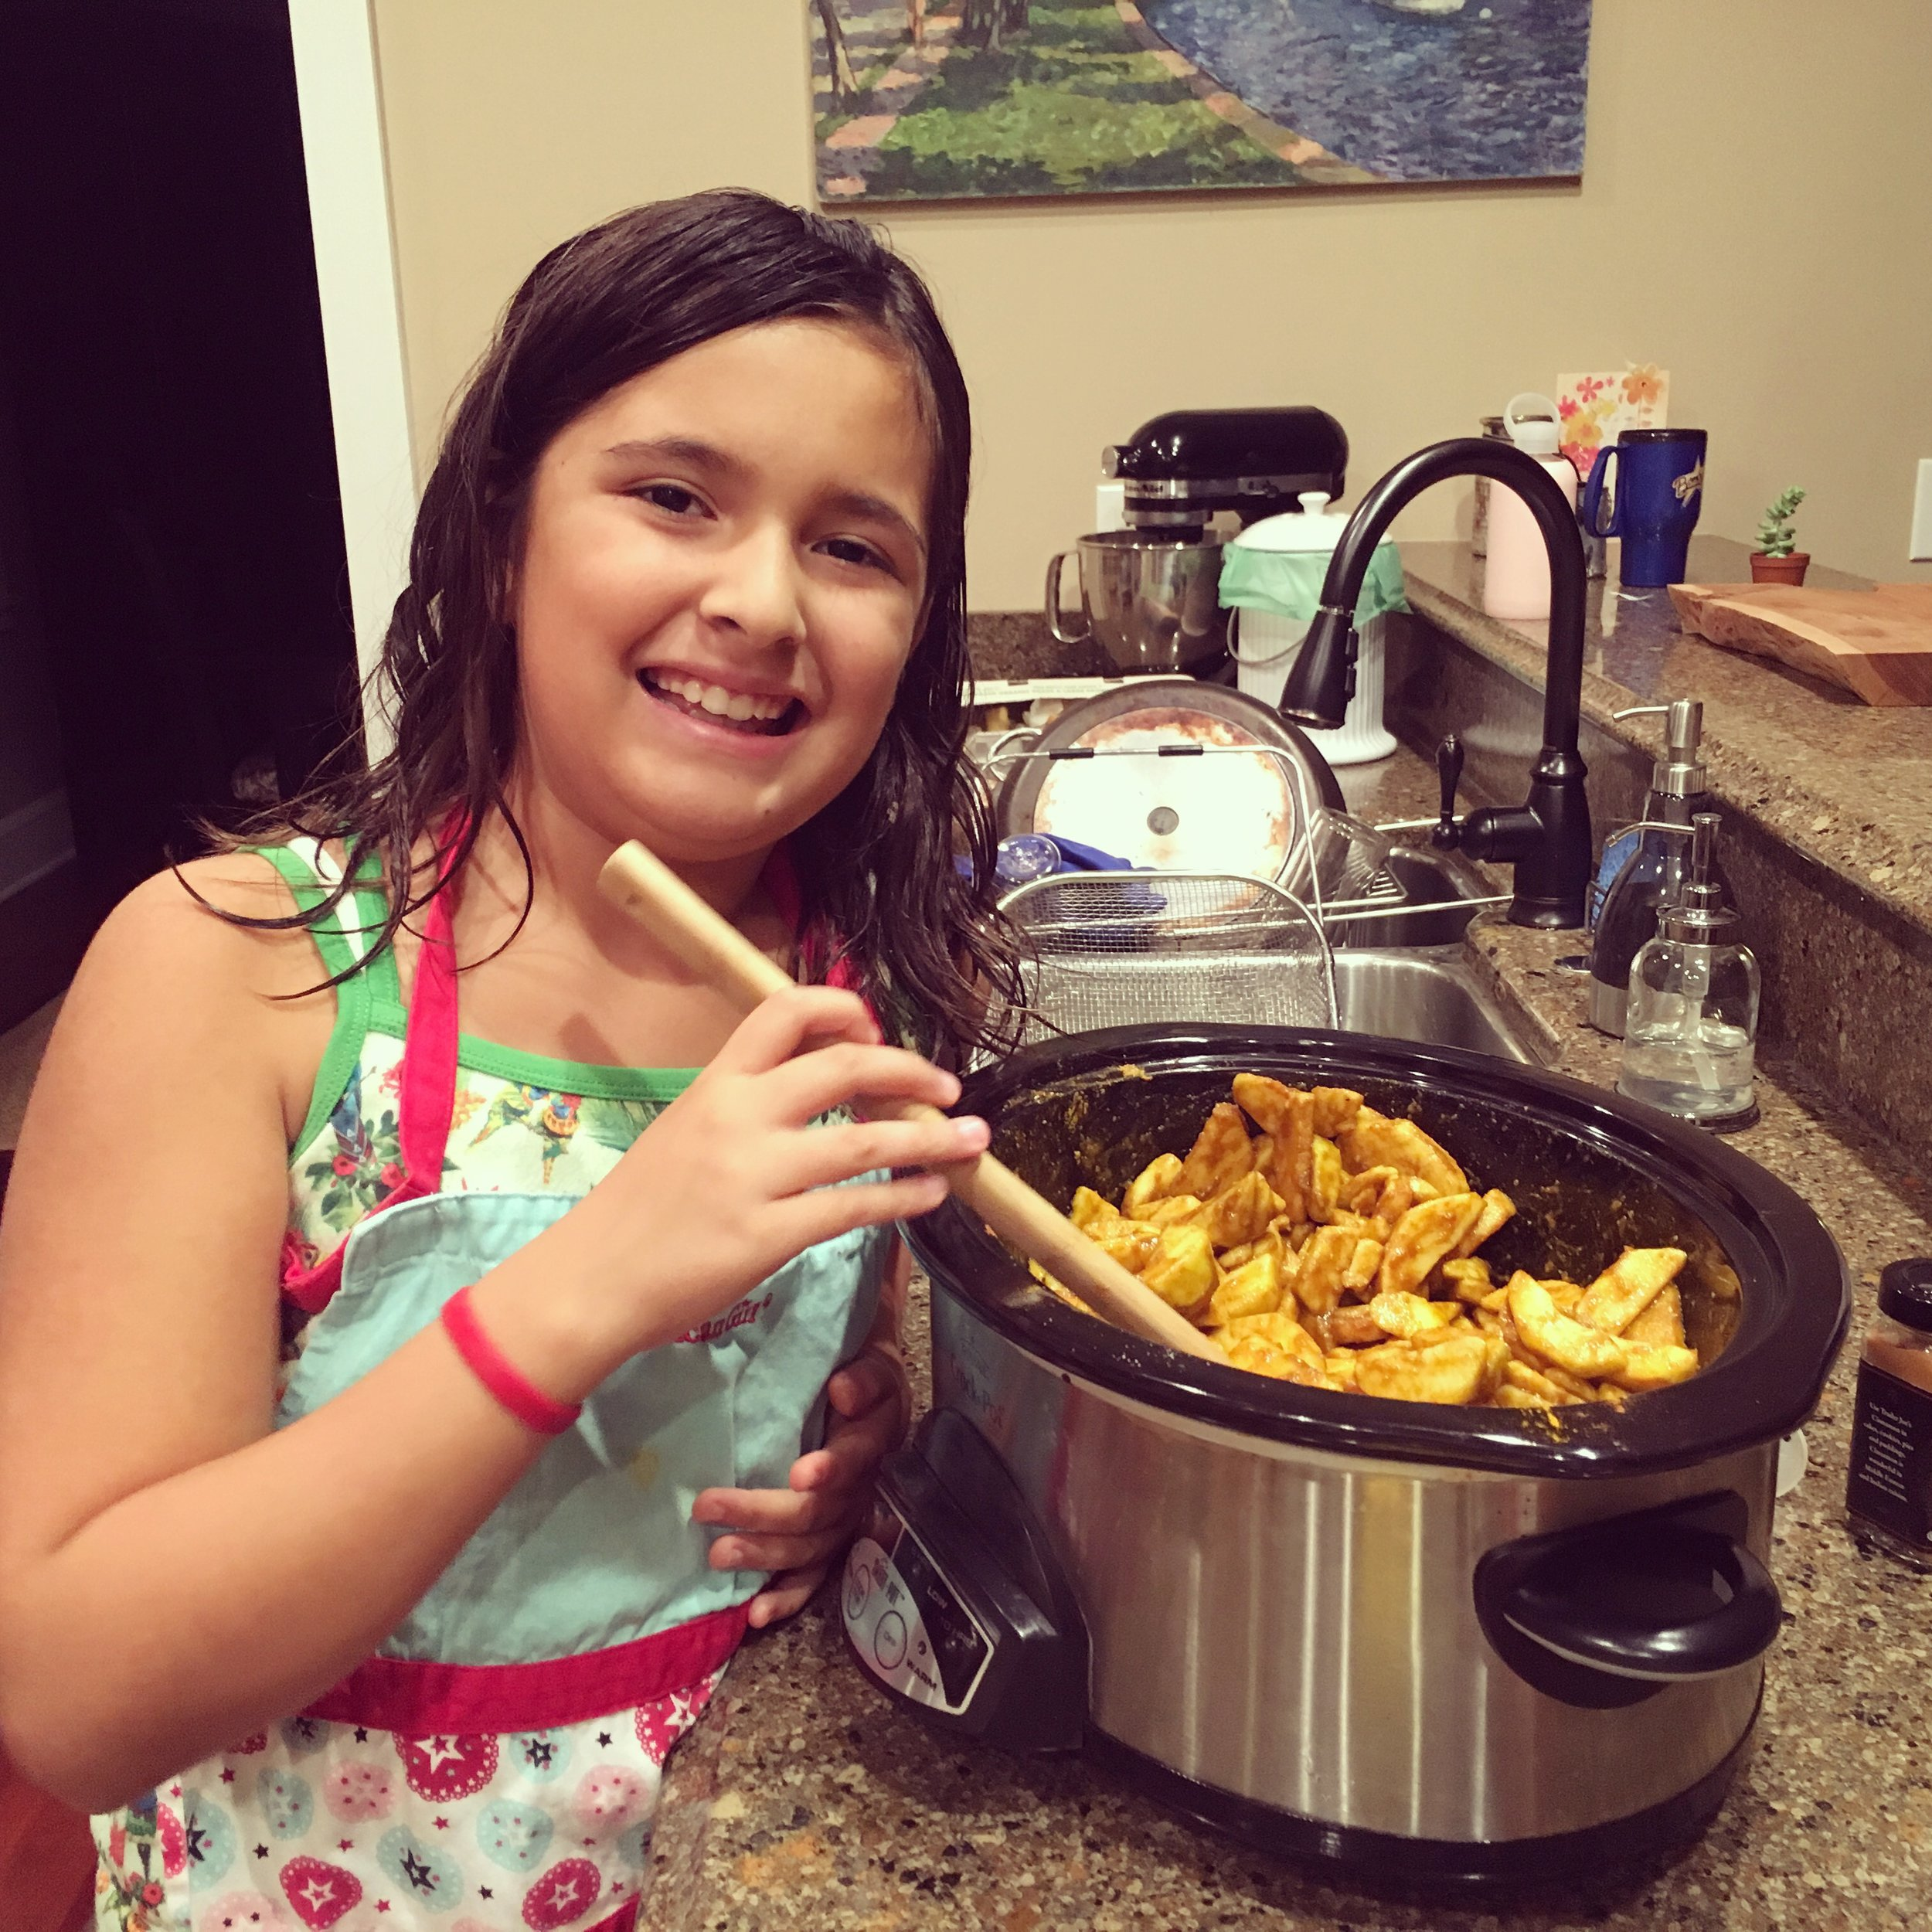 Instagram Message: She's making some  thoughtful pinches  for Child Health Day next Mon. Oct. 3rd. Find the recipe on thoughtfulpinch.com.